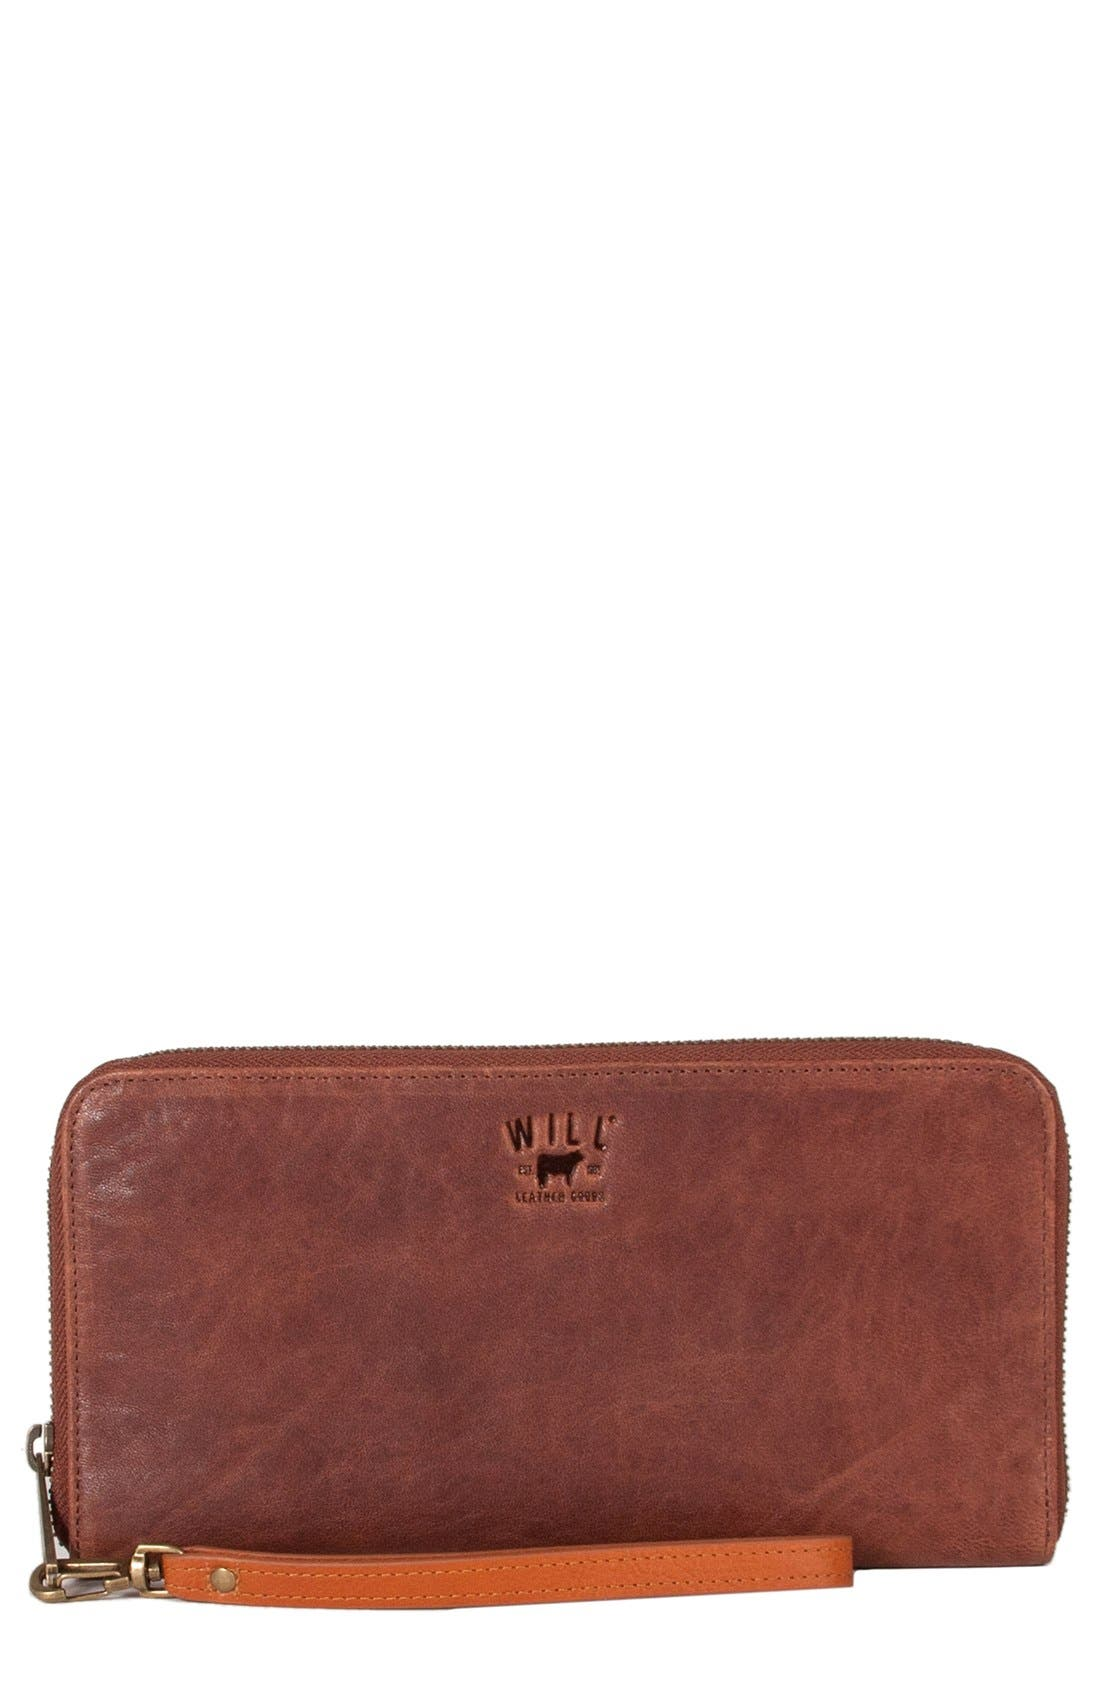 Alternate Image 1 Selected - Will Leather Goods 'Imogen' Washed Italian Lambskin Leather Checkbook Clutch